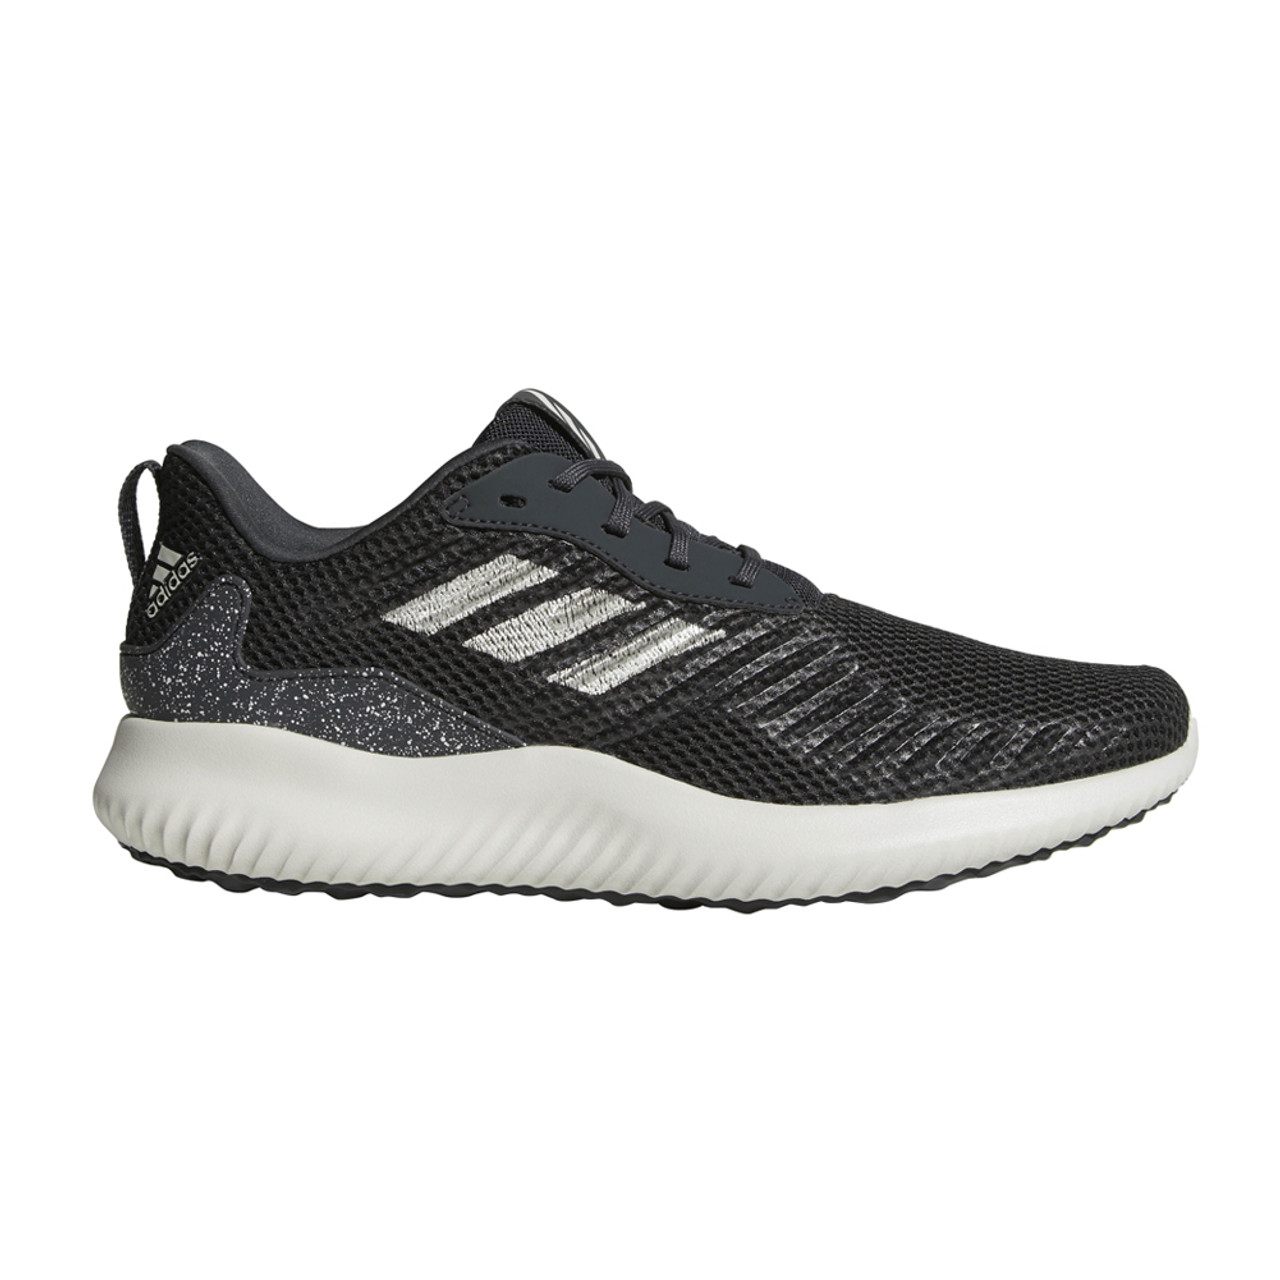 wholesale dealer e24a4 bd1d0 Adidas Men s Alphabounce RC Running Shoe Carbon Pearl - Shop now    Shoolu.com